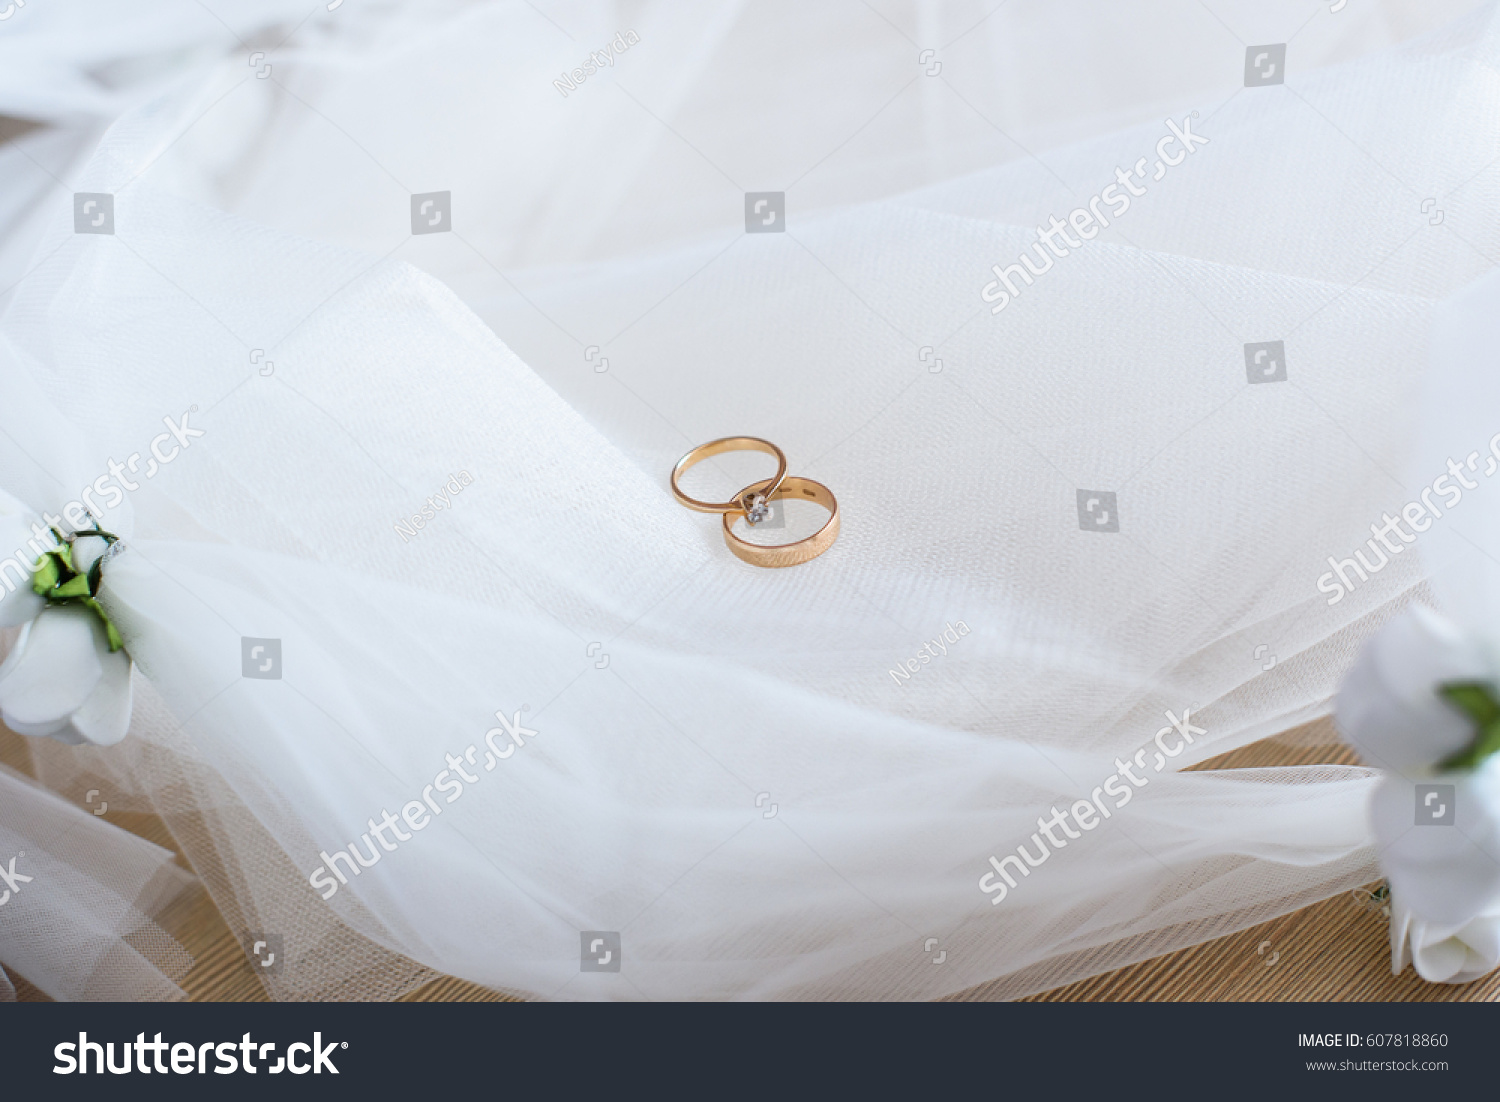 Gold Wedding Rings On White Background Stock Photo Edit Now